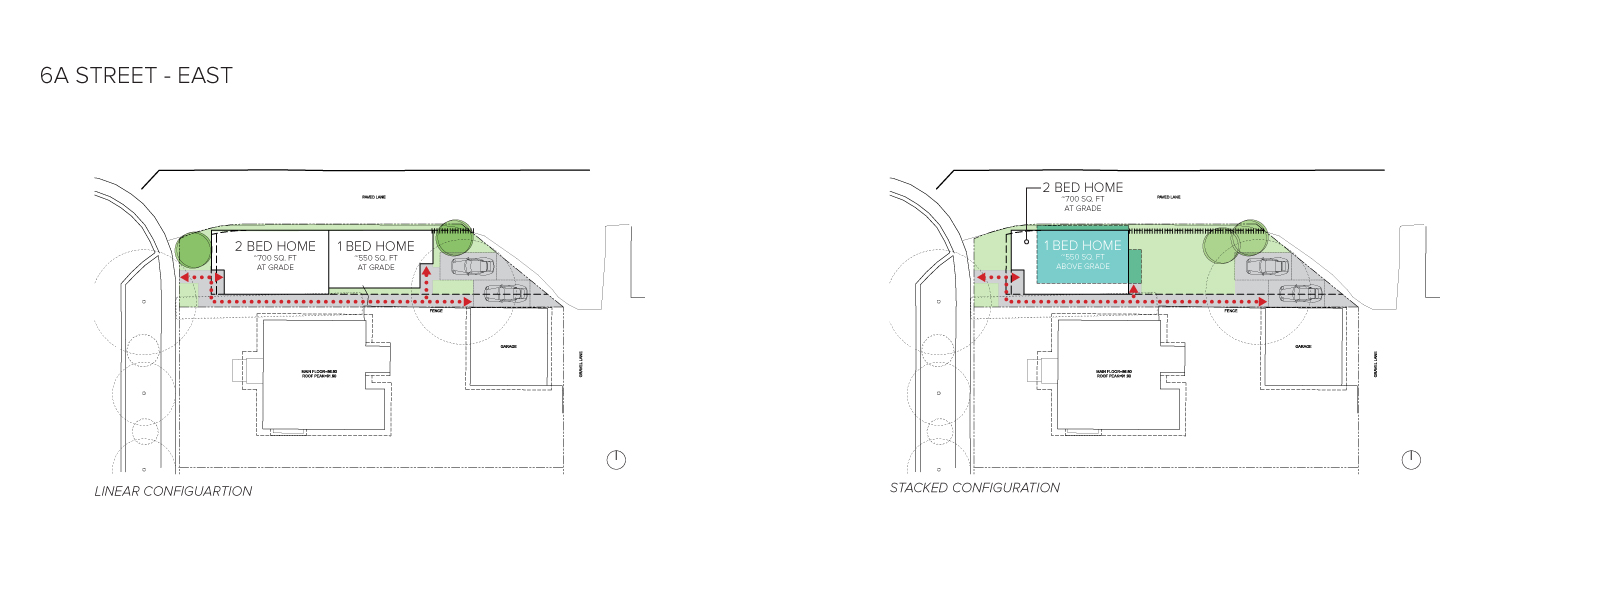 An image of the home configurations on the east side of 6A Street.